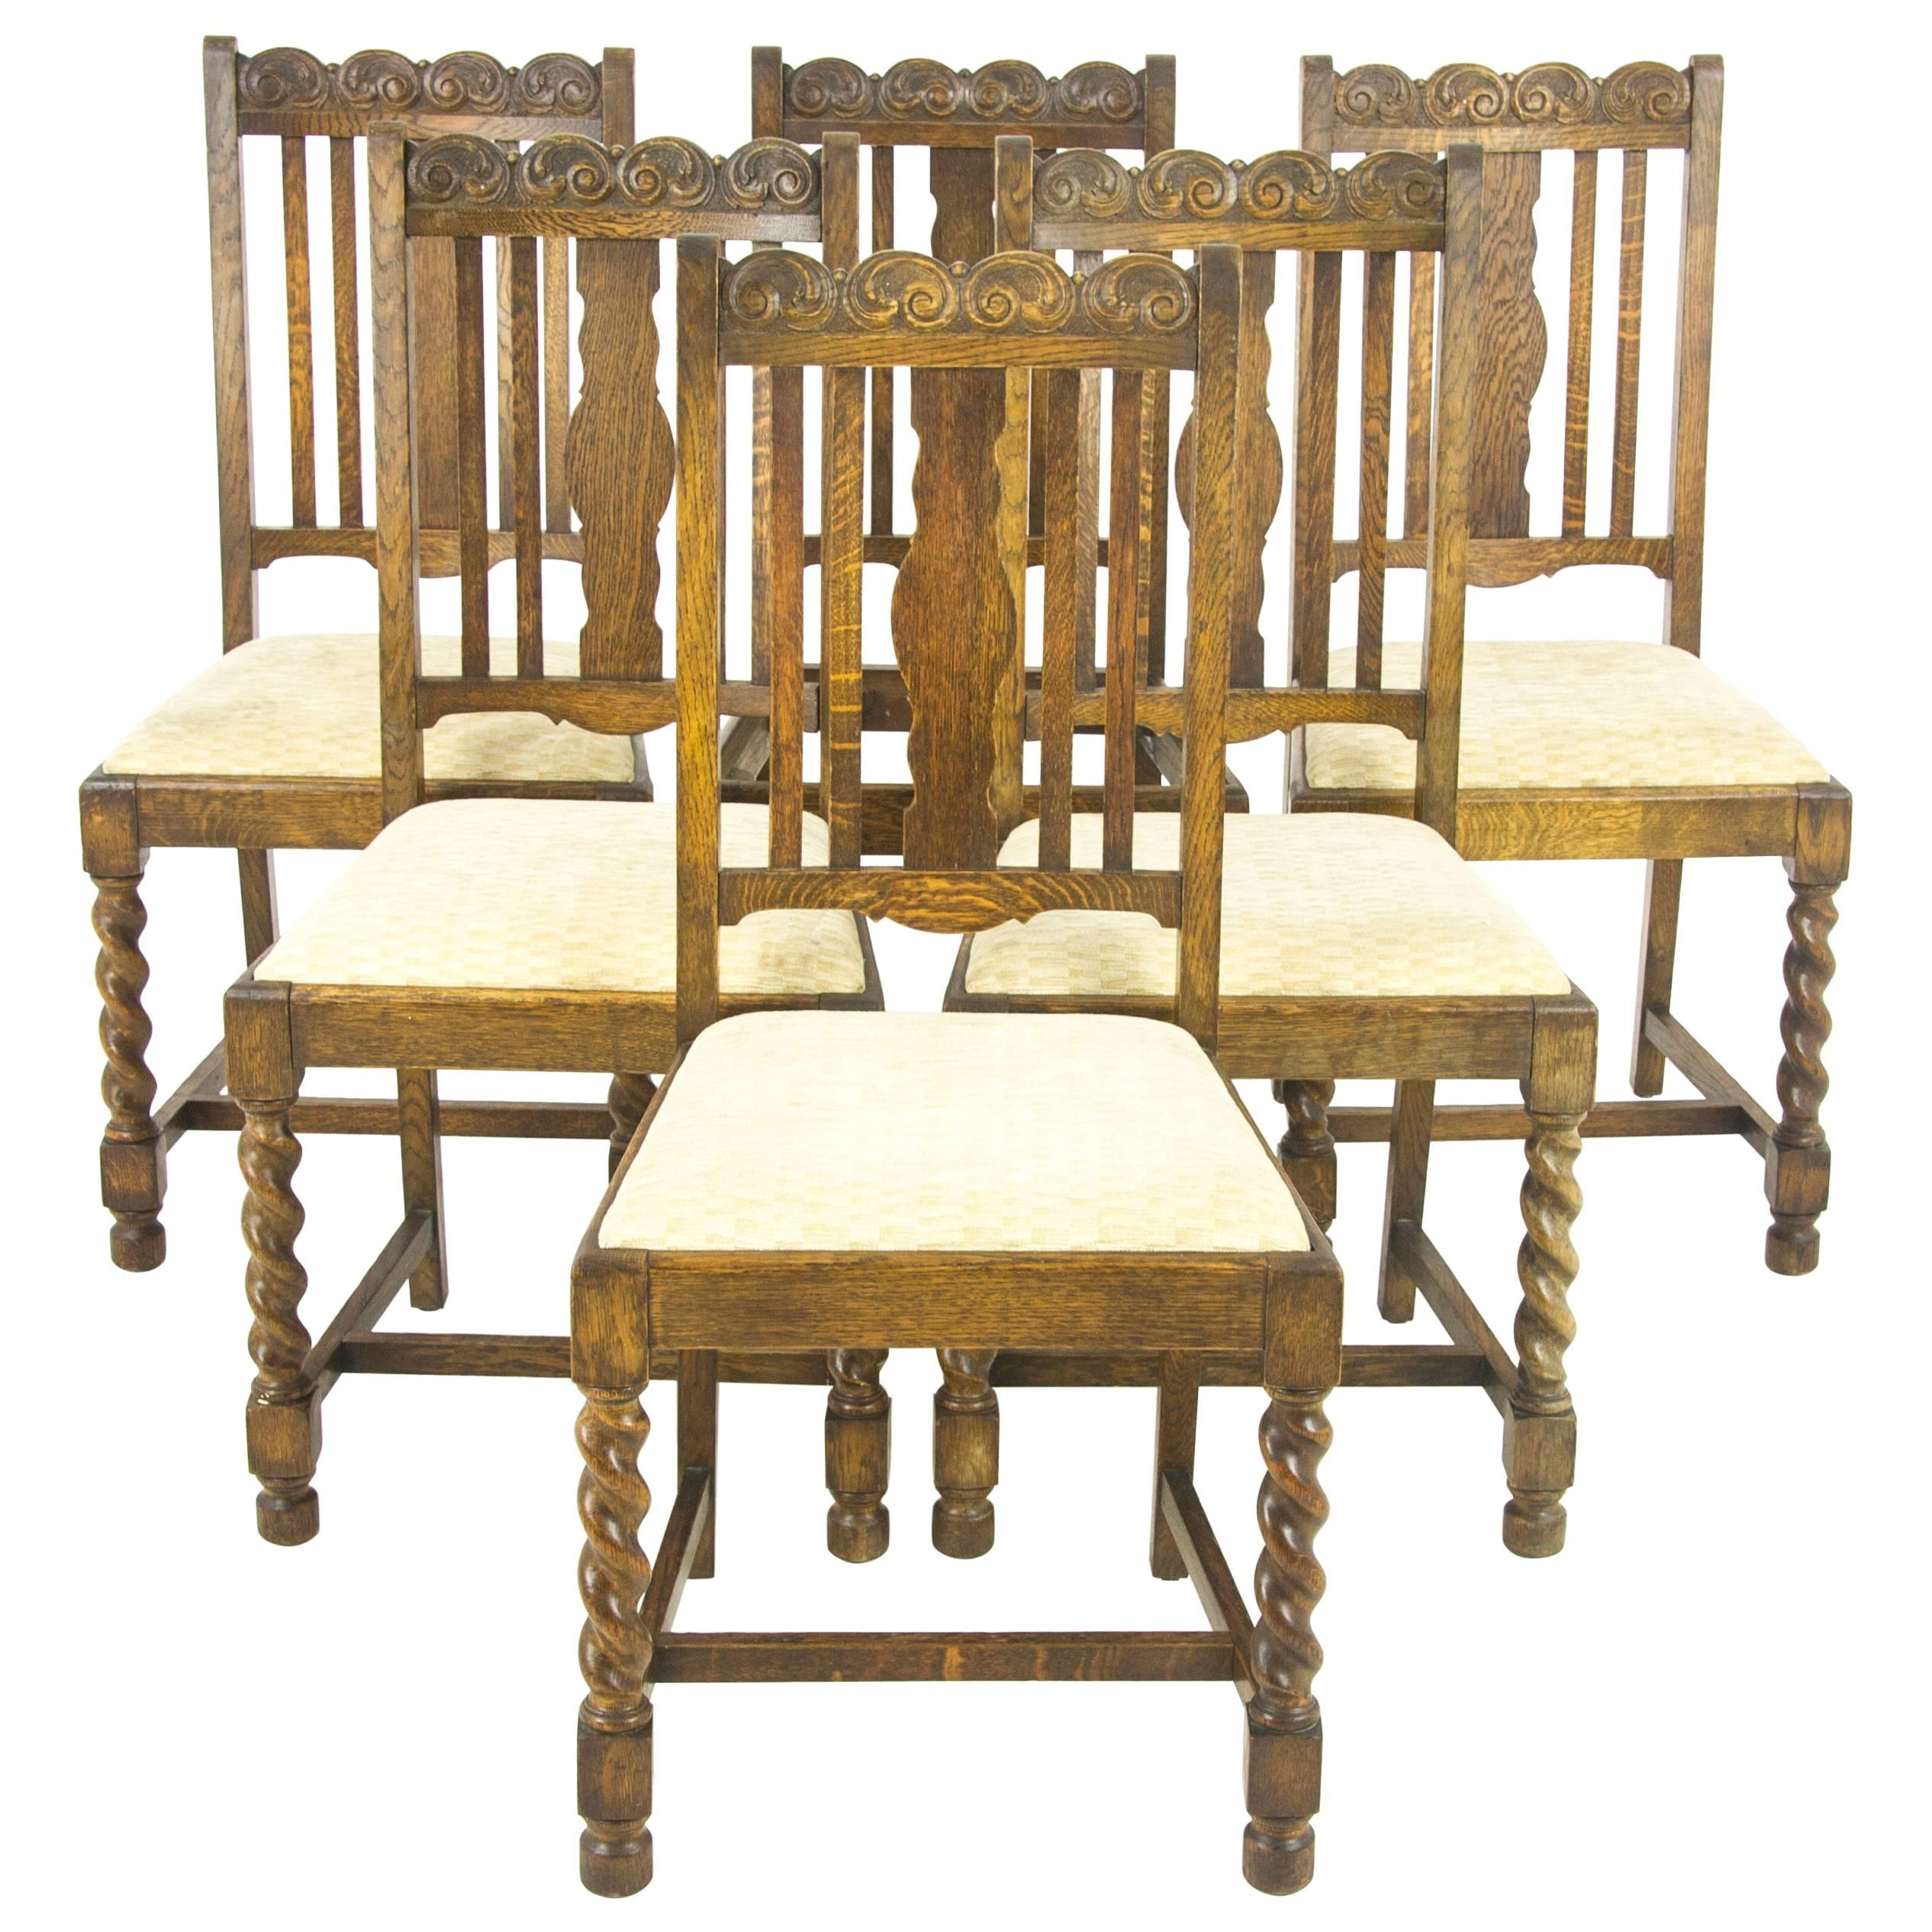 Antique Dining Chairs Six, Barley Twist Oak, Antique Furniture, Scotland,  1920s For